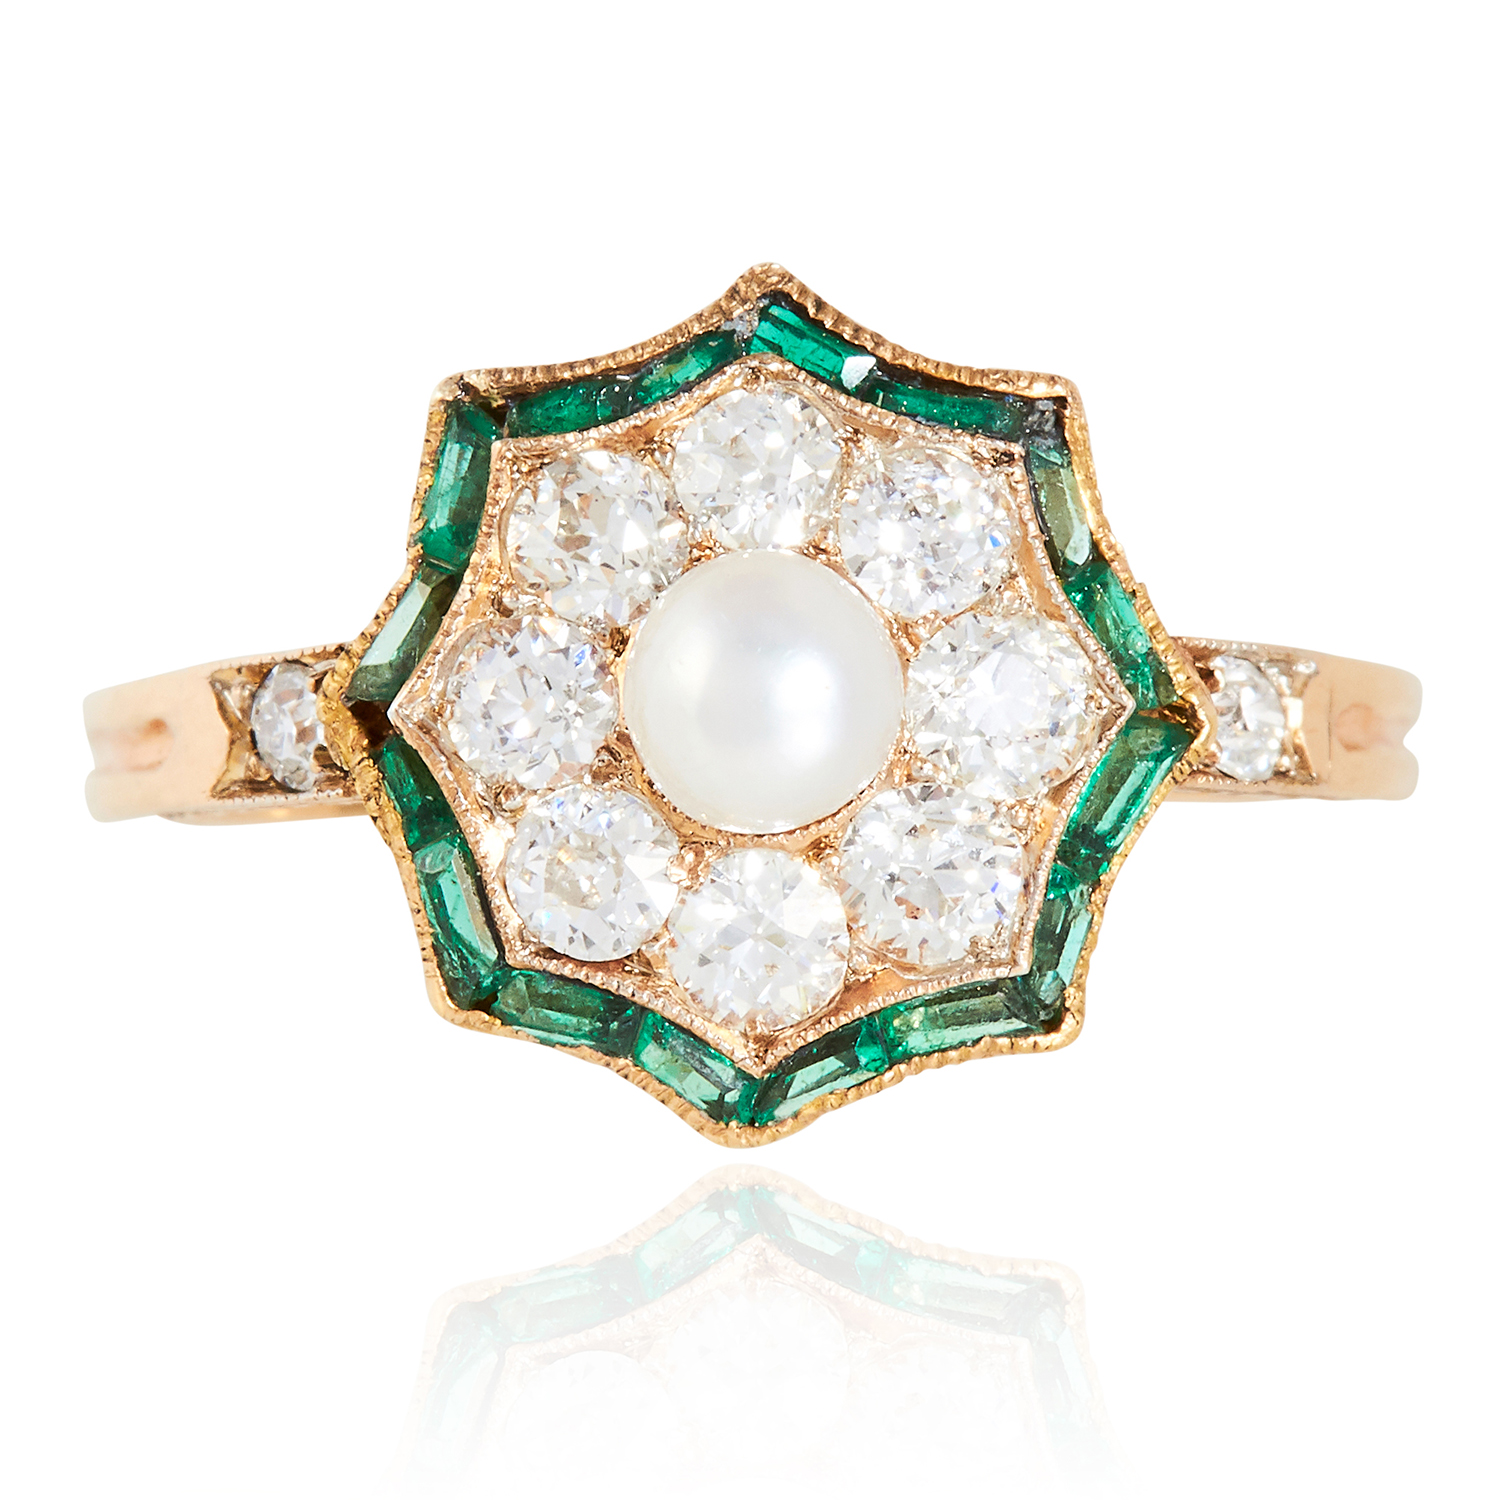 Los 16 - AN ART DECO PEARL, DIAMOND AND EMERALD RING in 18ct yellow gold, the central pearl encircled by